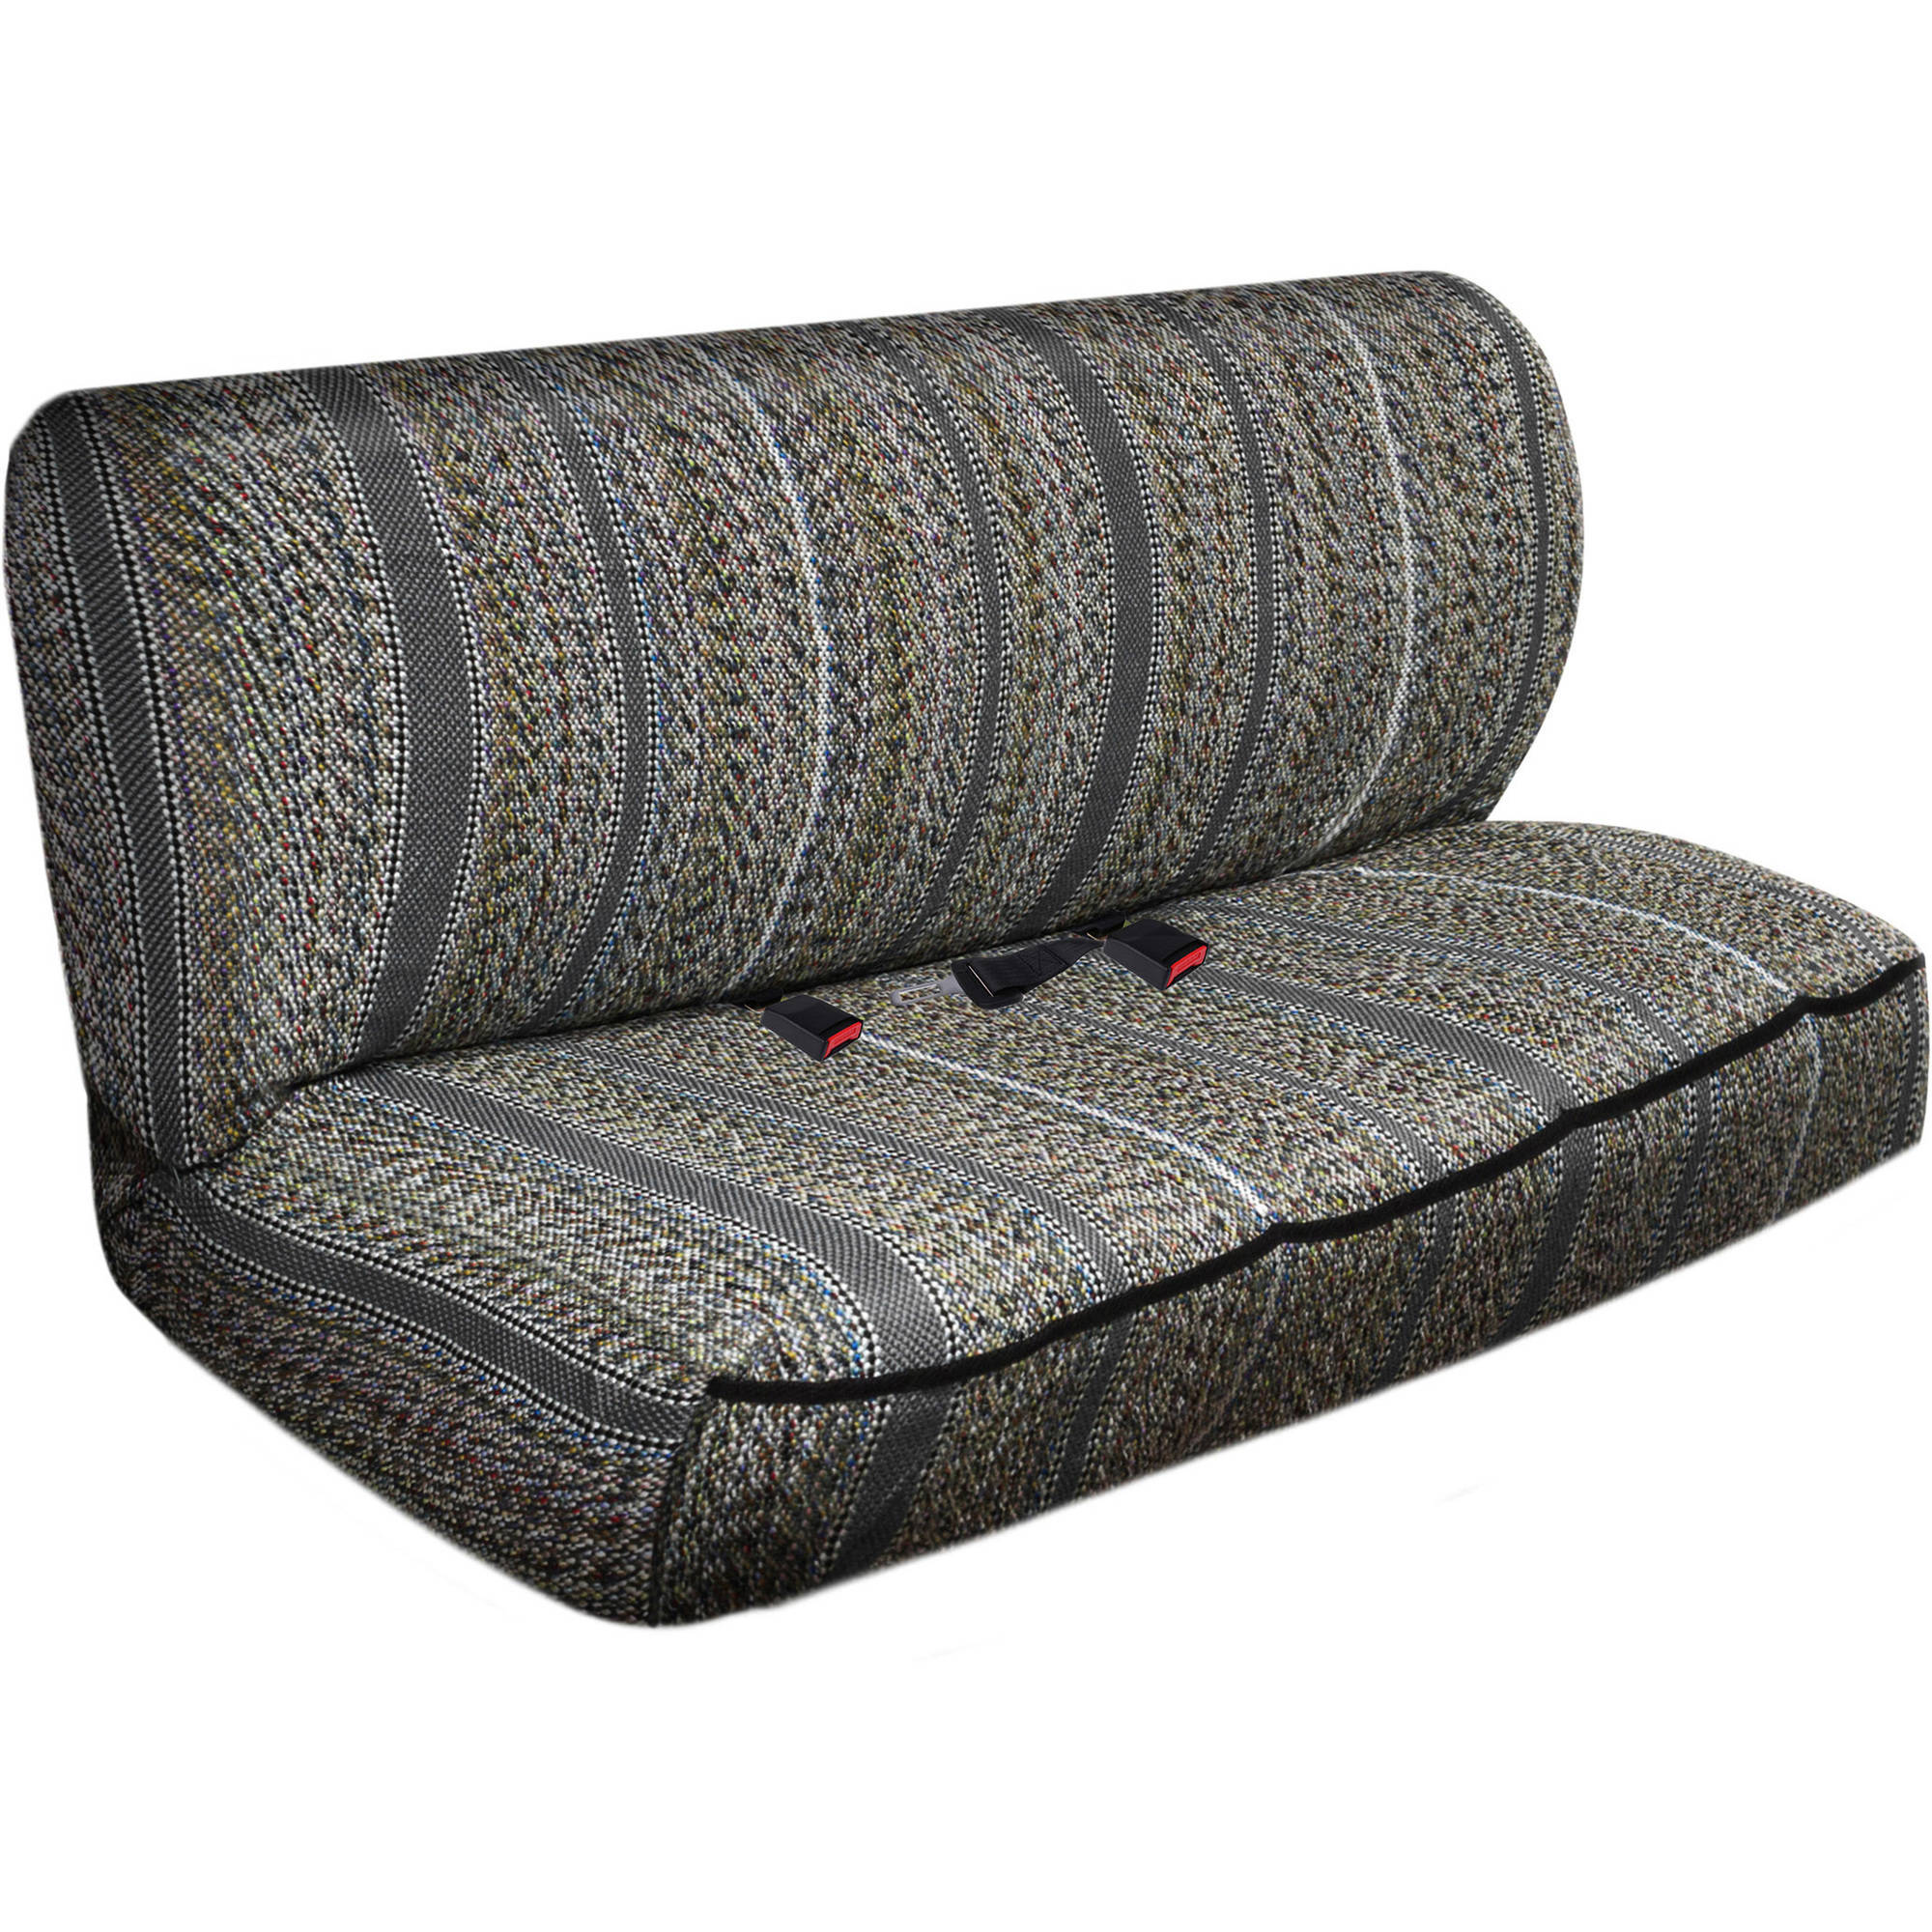 OxGord 2-Piece Full Size Heavy Duty Saddle Blanket Bench Seat Covers, Gray